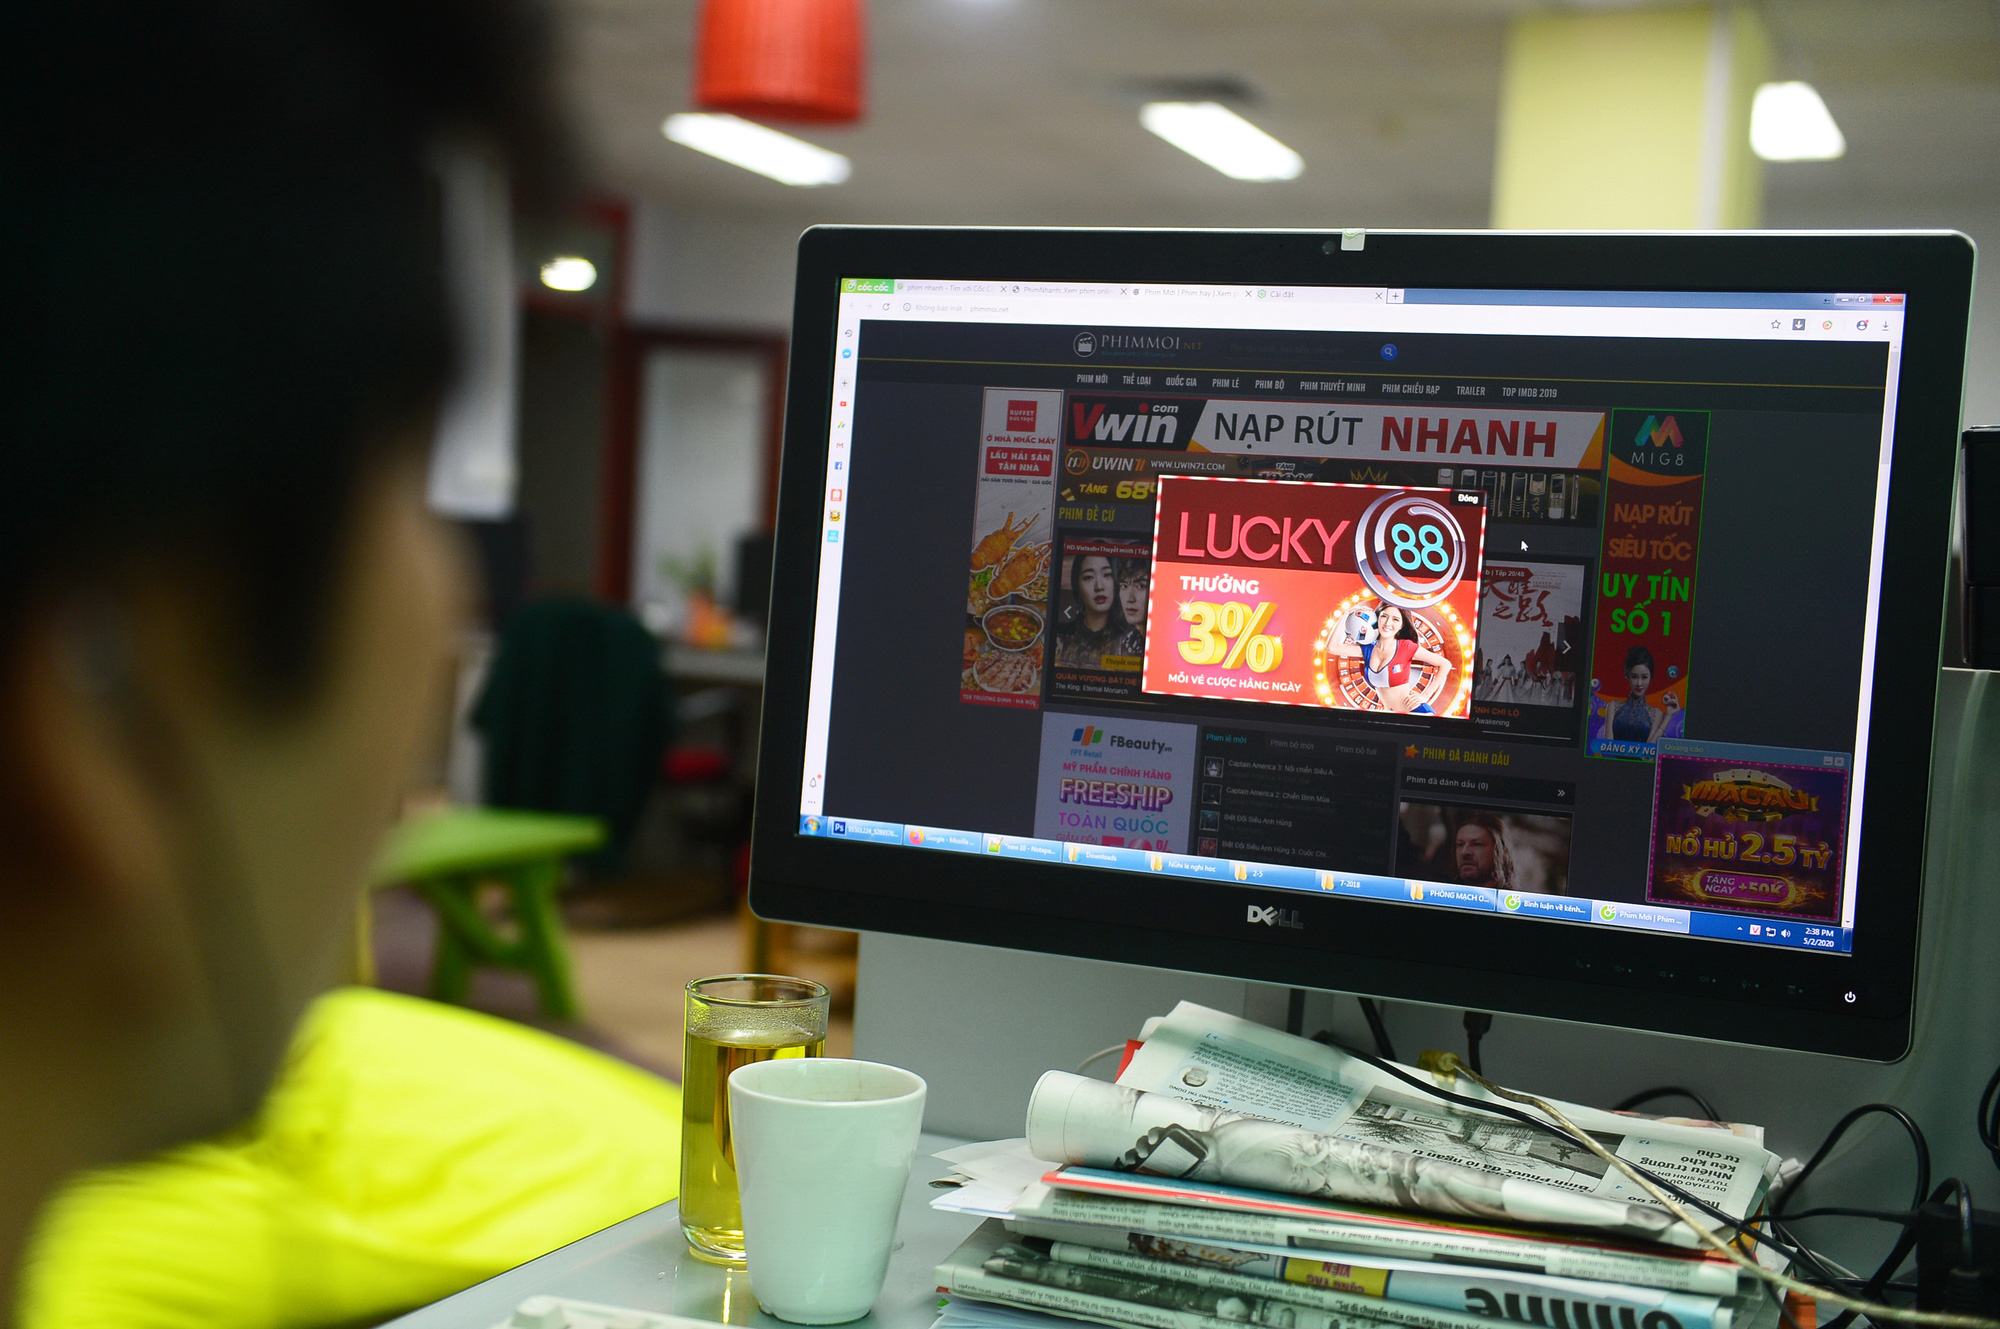 Online gambling advertisements appear on a Vietnamese website offering illegal film streaming service. Photo: Quang Dinh / Tuoi Tre